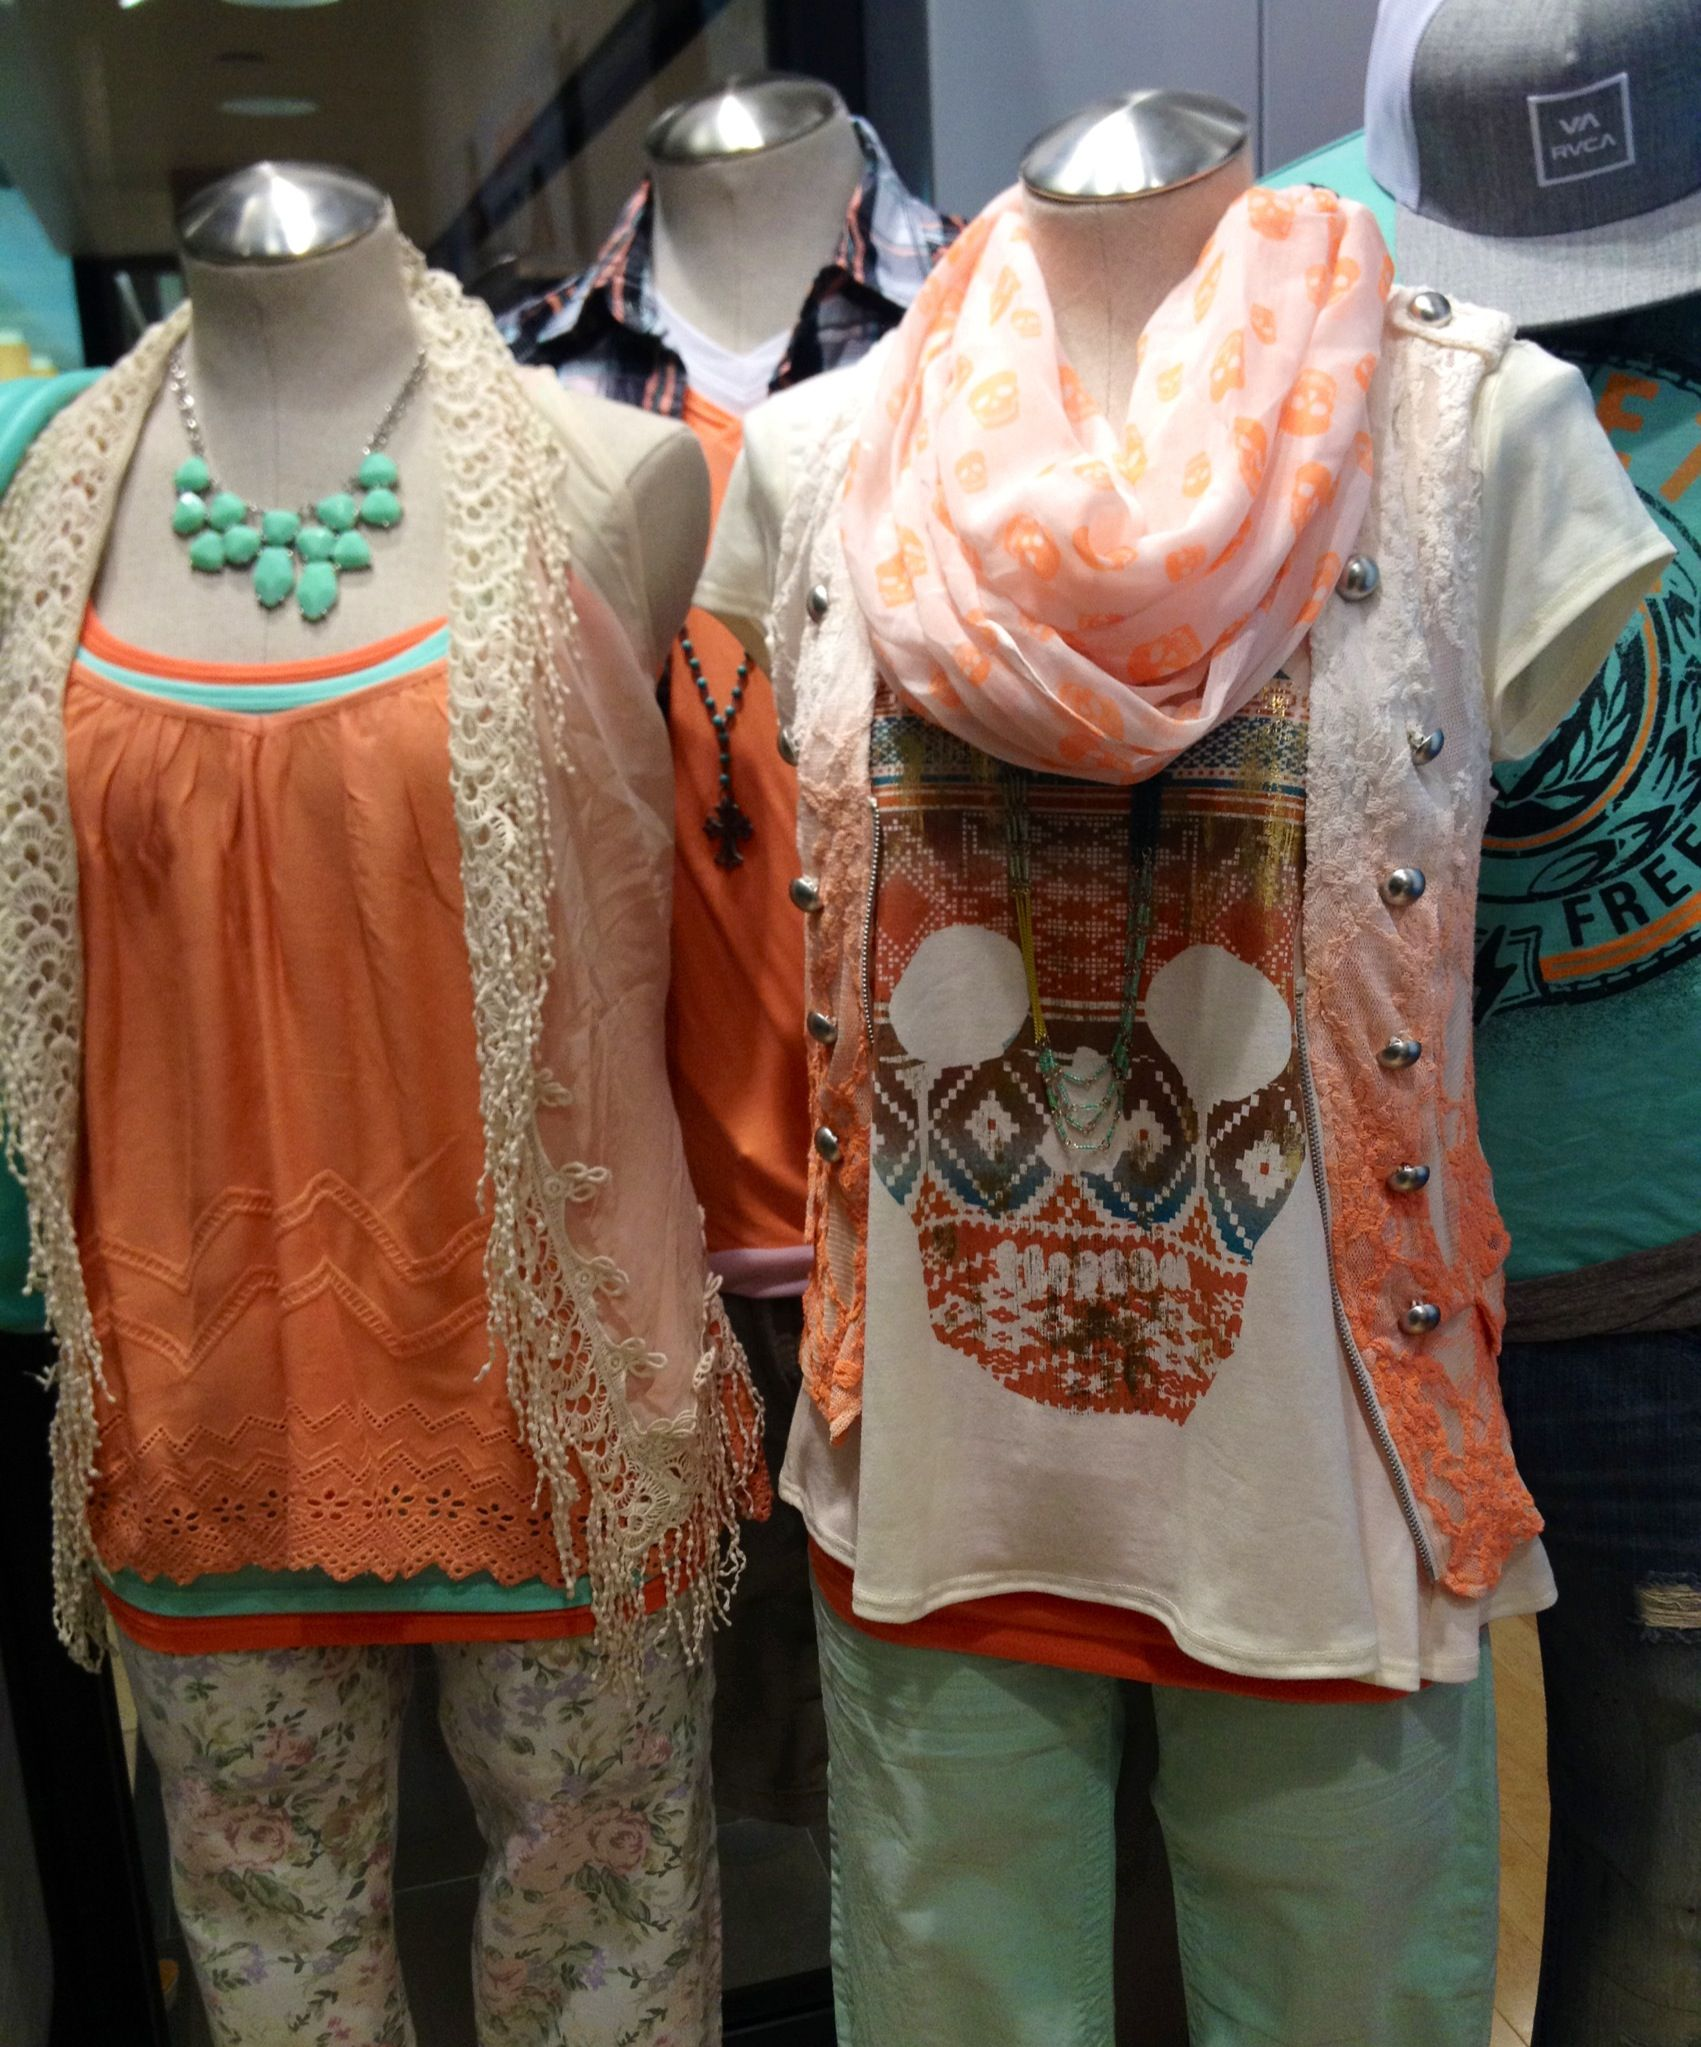 #thebuckle #store40 #coral #mint #springfashion